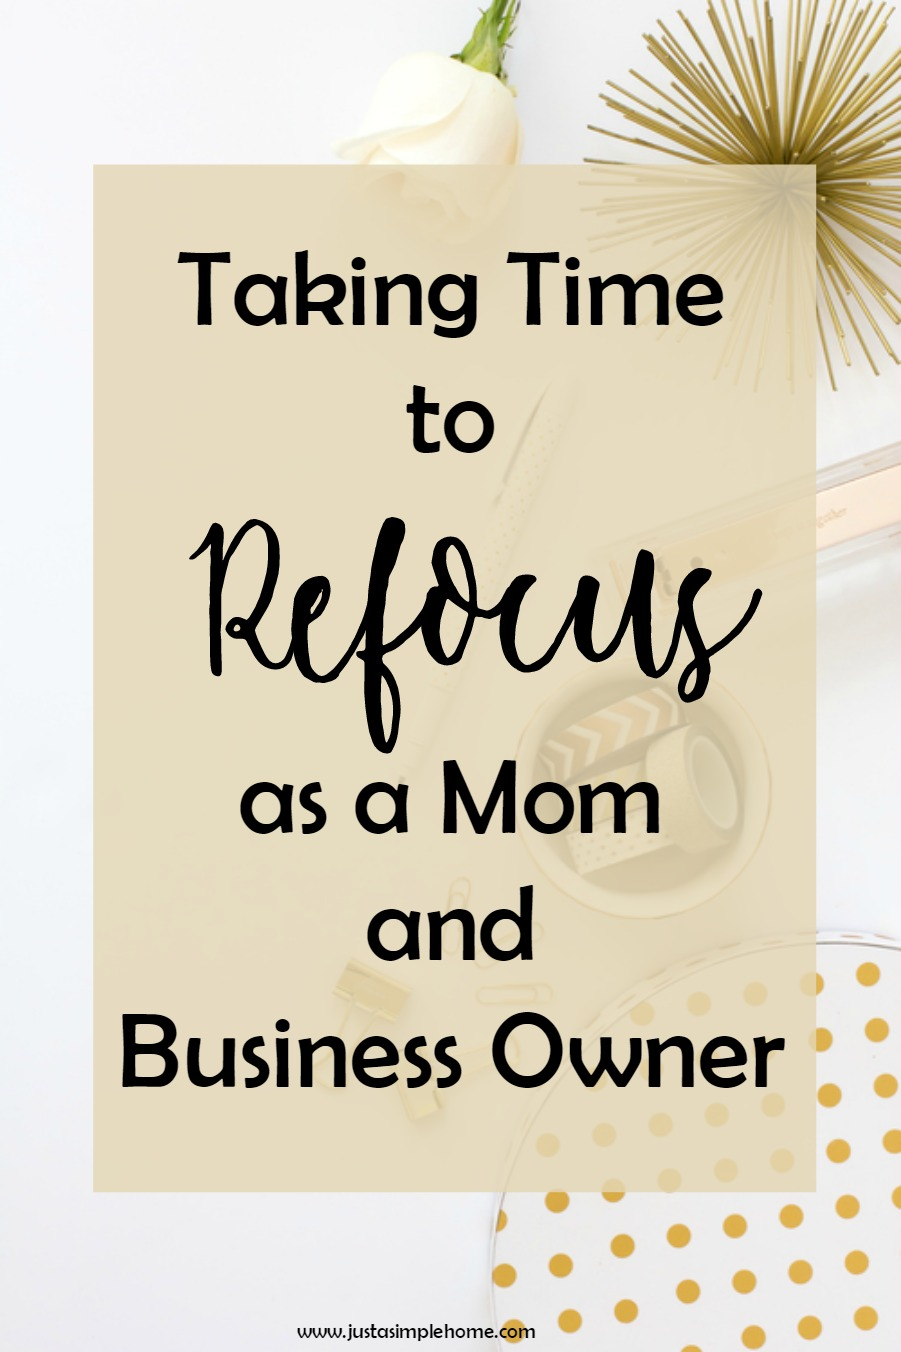 Refocus as a Mom-Bus Owner